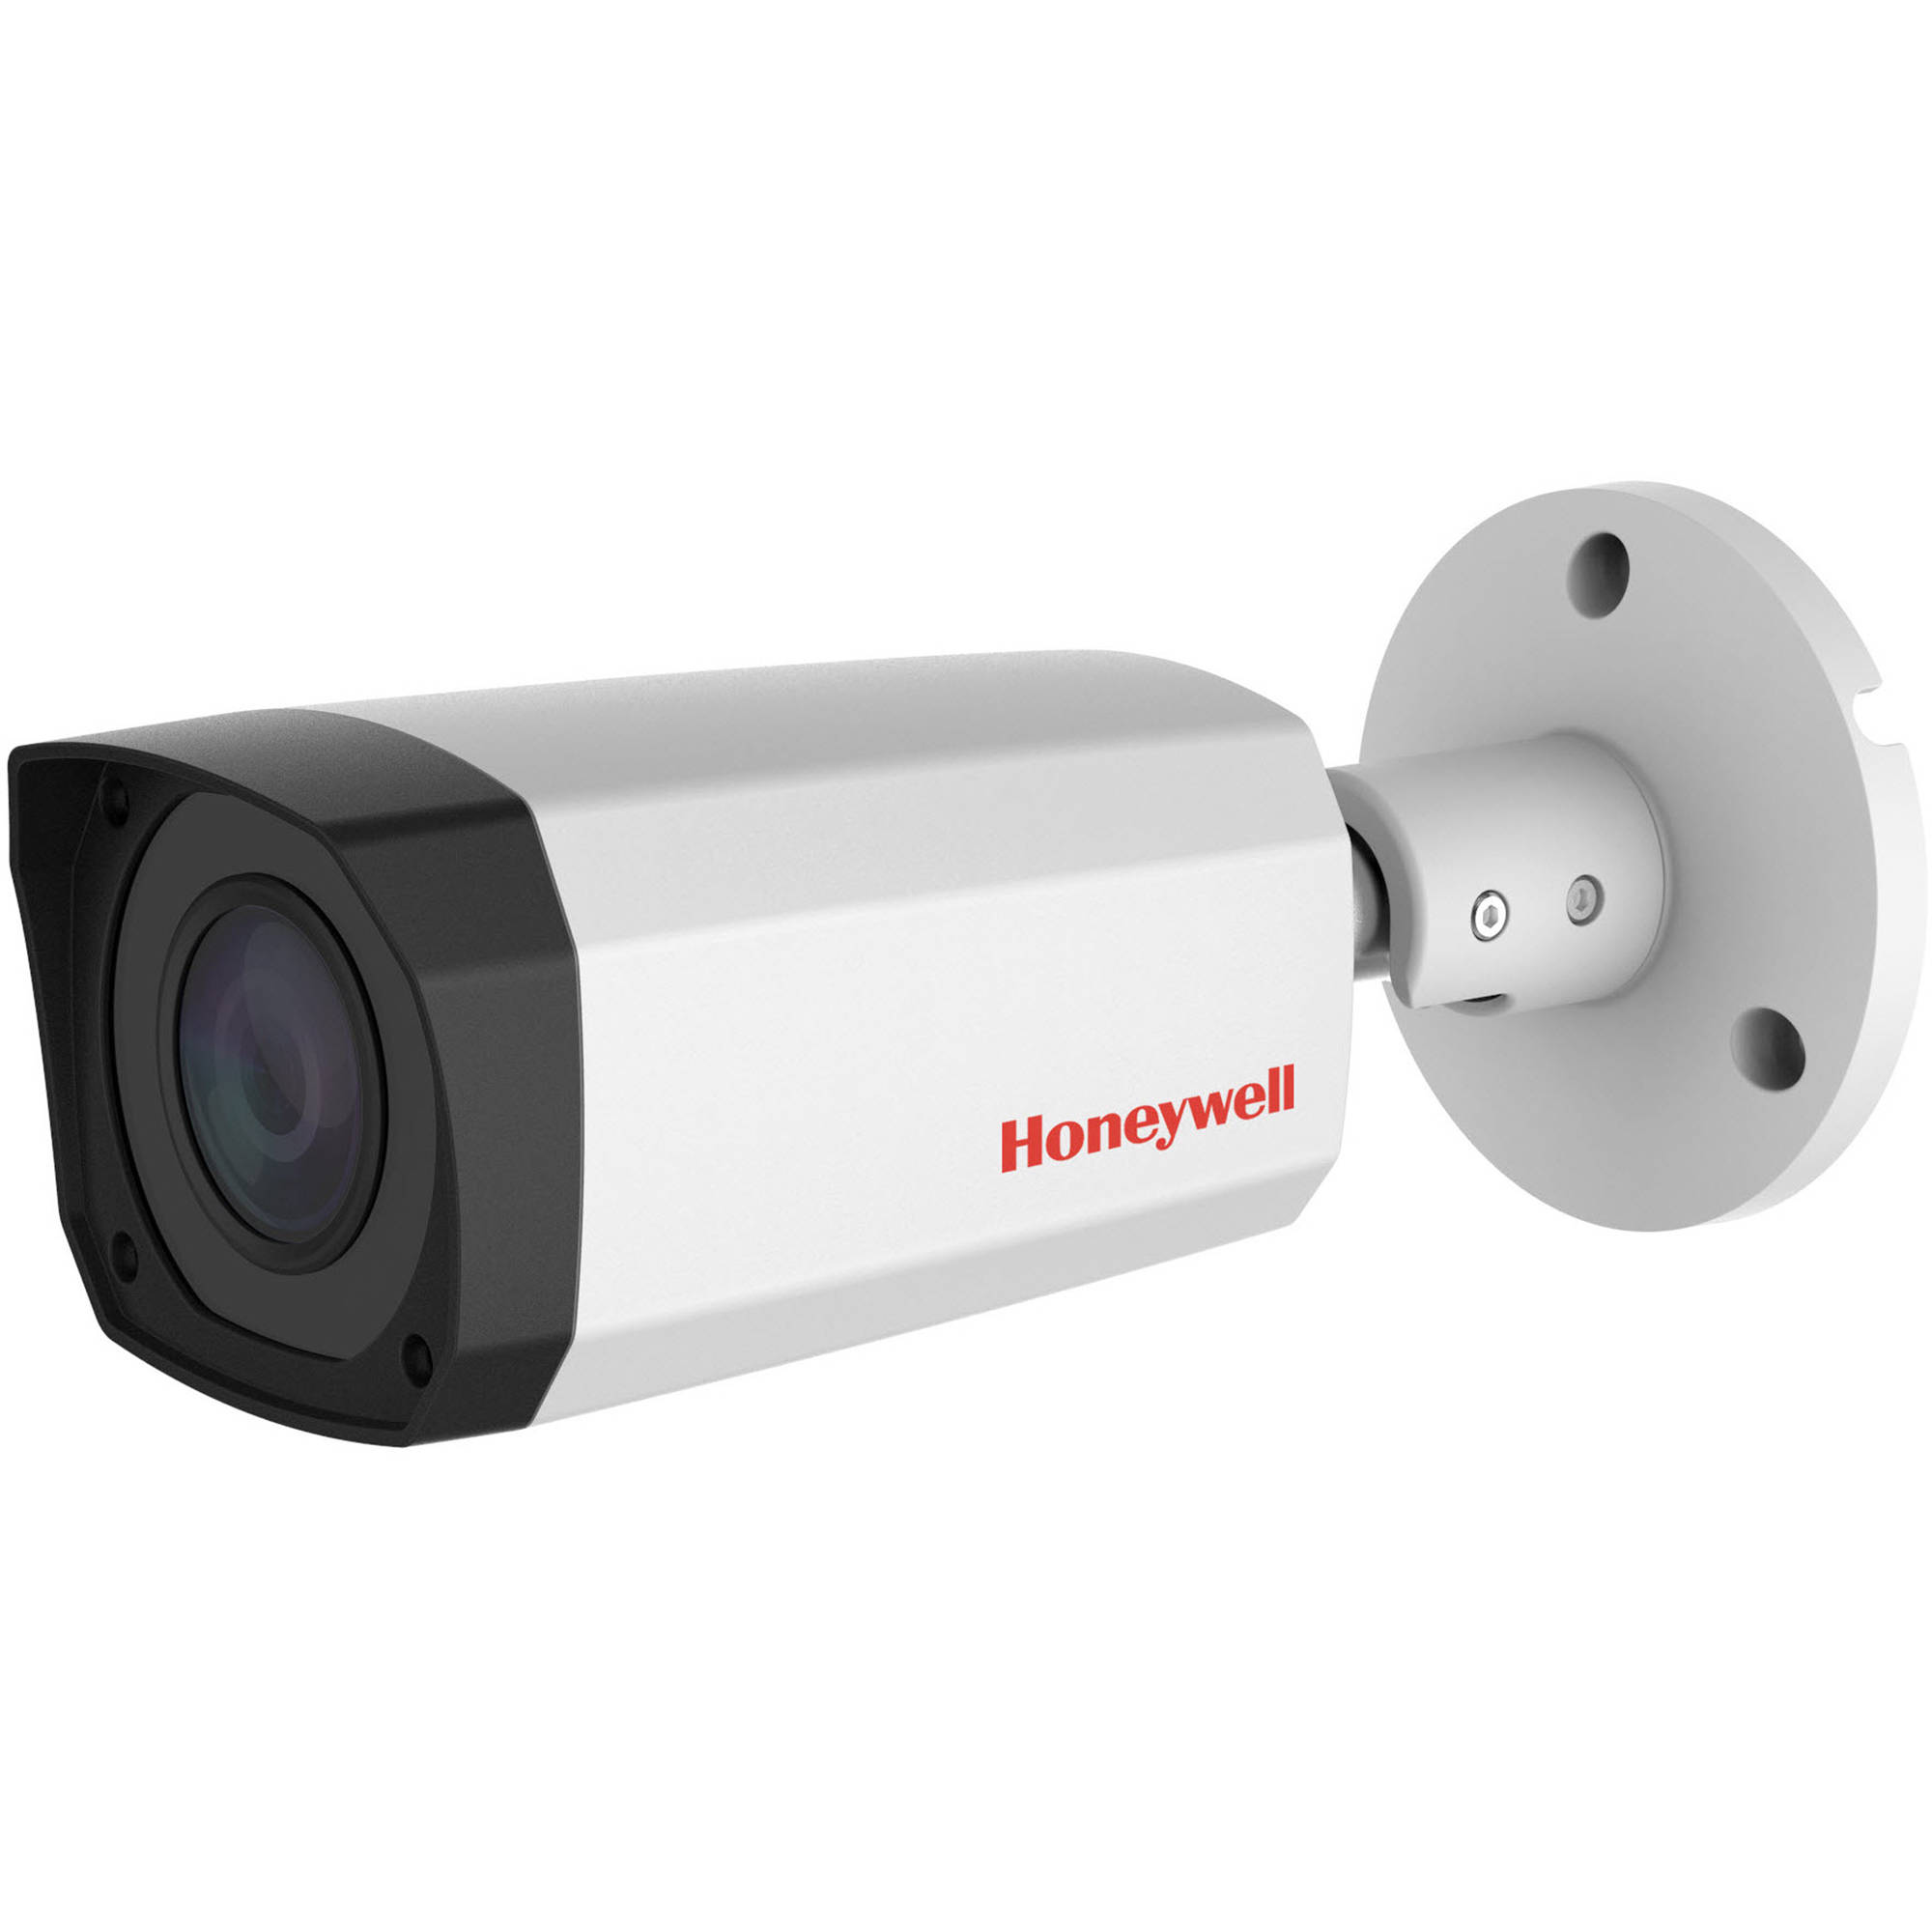 Camera Honeywell HBD3PR2 2.7–12 mm F1.4 motorized focus/zoom lens